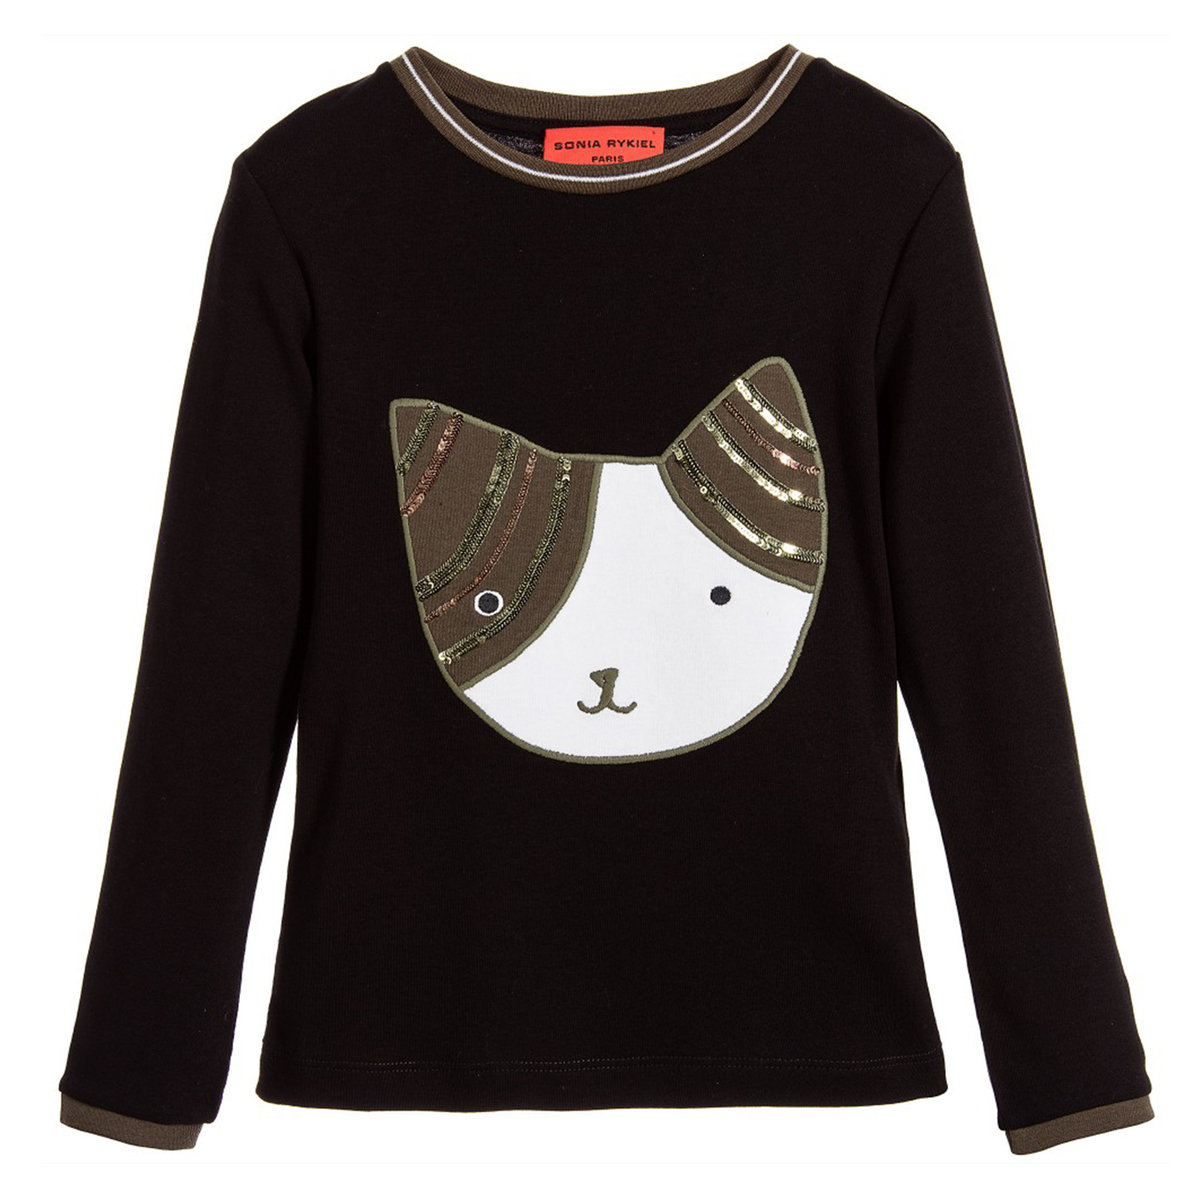 Black Tee shirt with fancy cat face patch and sequins